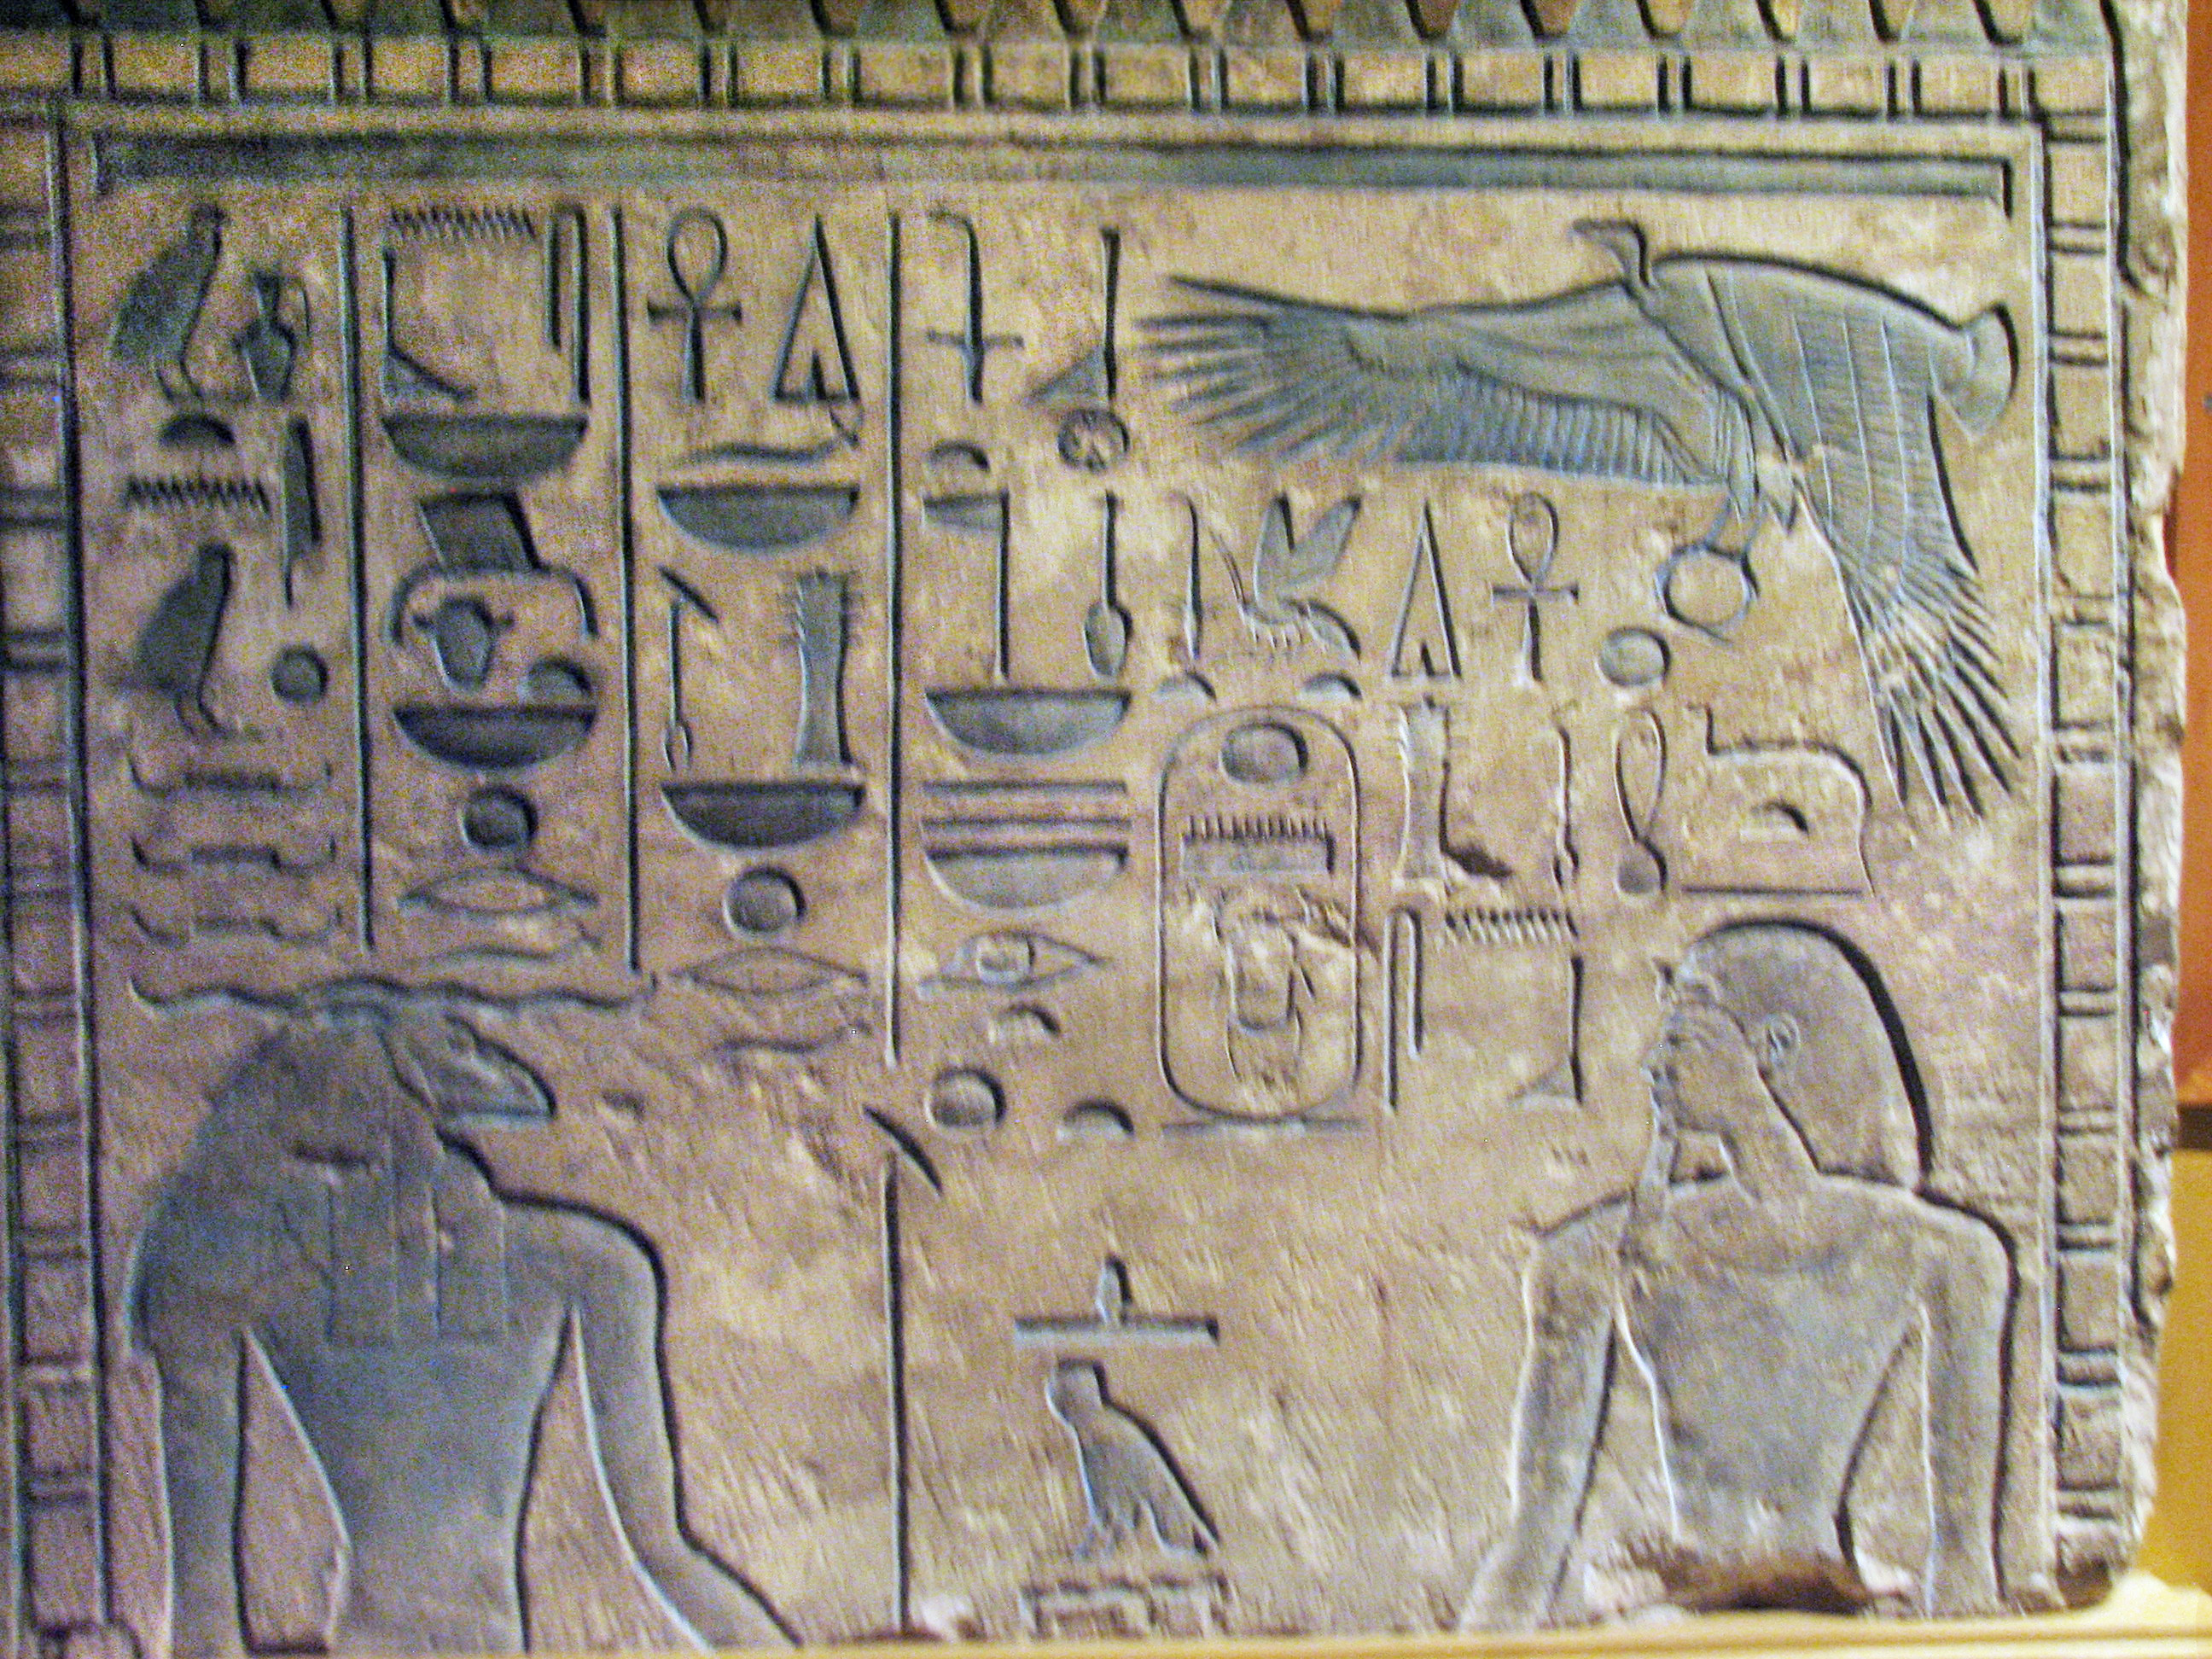 the life ad reign of thutmose iii New kingdom egypt, a  hatshepsut declares herself ruler, ruling alongside thutmose iii,  pliny the elder, circa ad 23-ad 79.